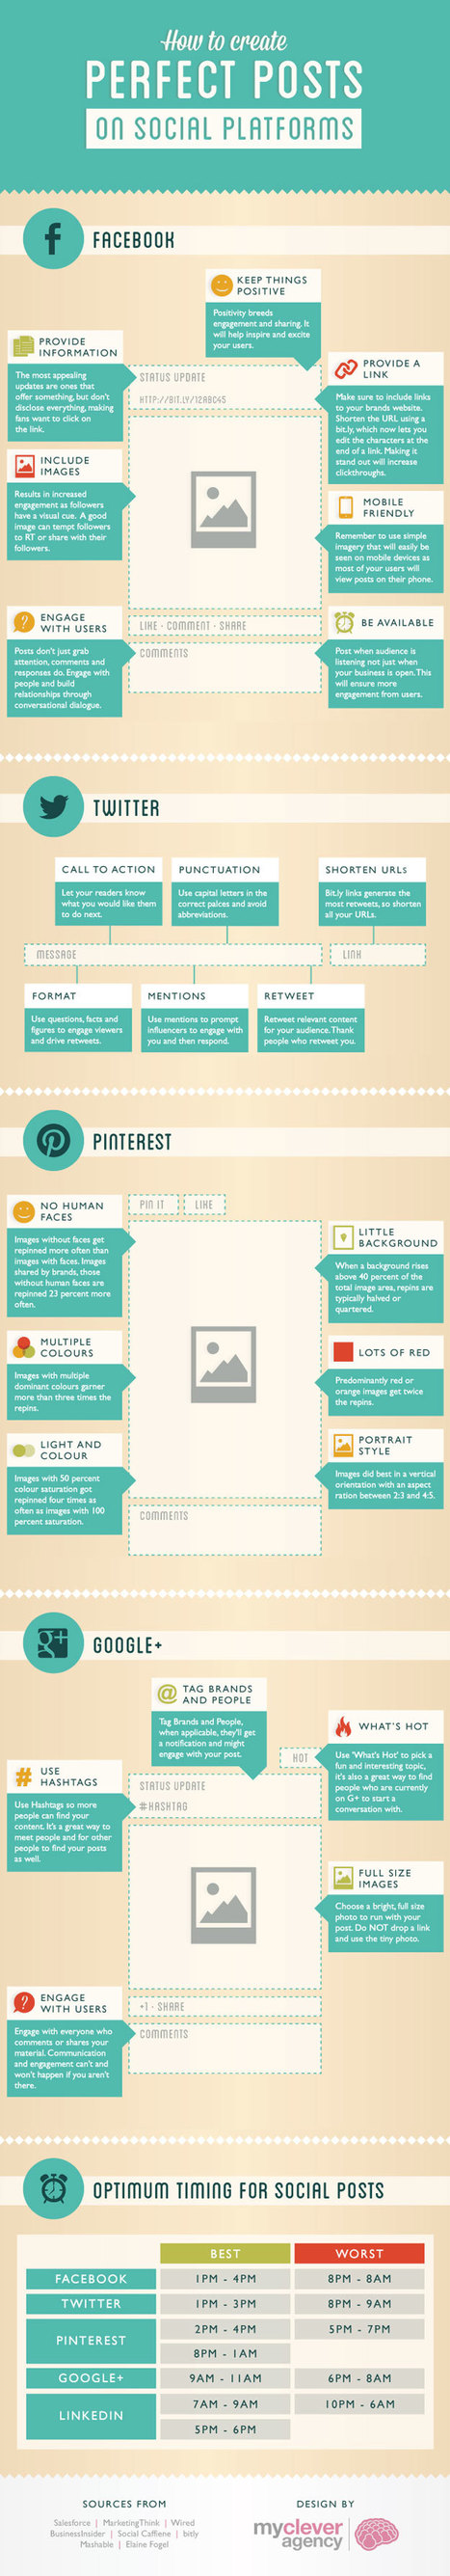 How To Create Effective Posts on the 4 Main Social Sites [Infographic] | General Social Media Tips and Tools | Scoop.it